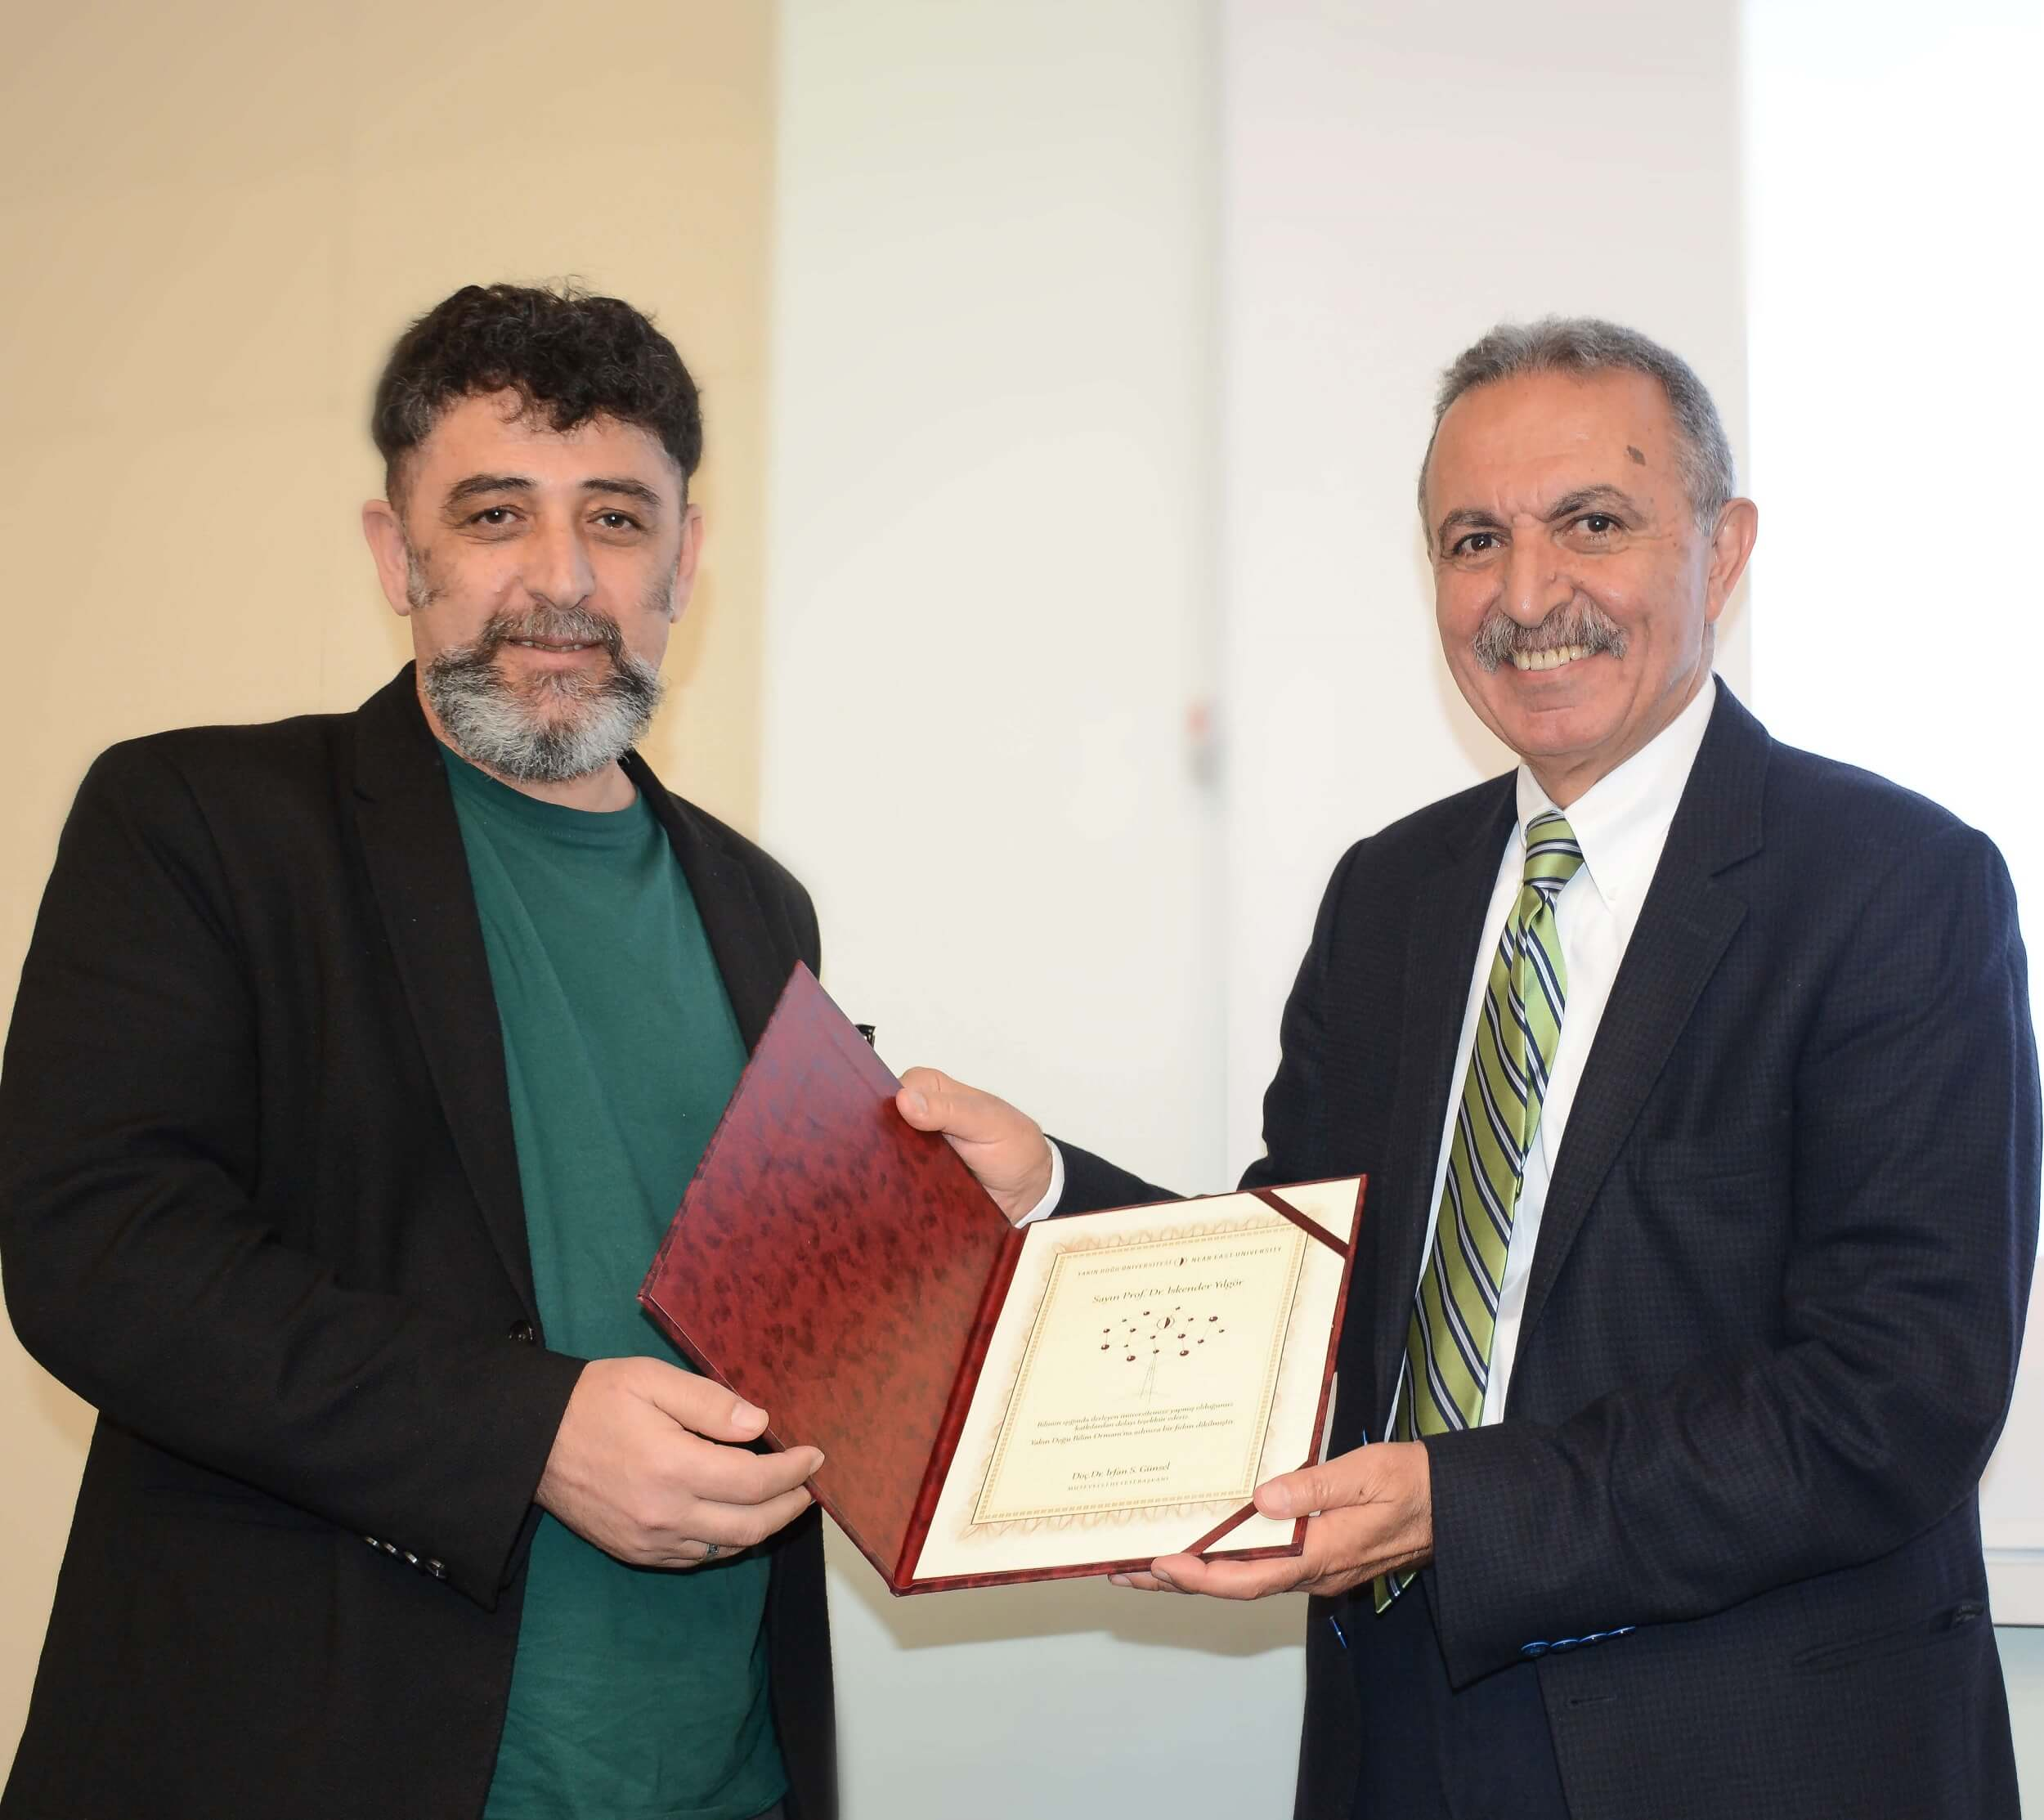 Organized by Near East University, Conference Series on '100 Reasons to Produce Science' hosted Prof. Dr. İskender YILGÖR who is one of the world's forerunners of studies on Polymers